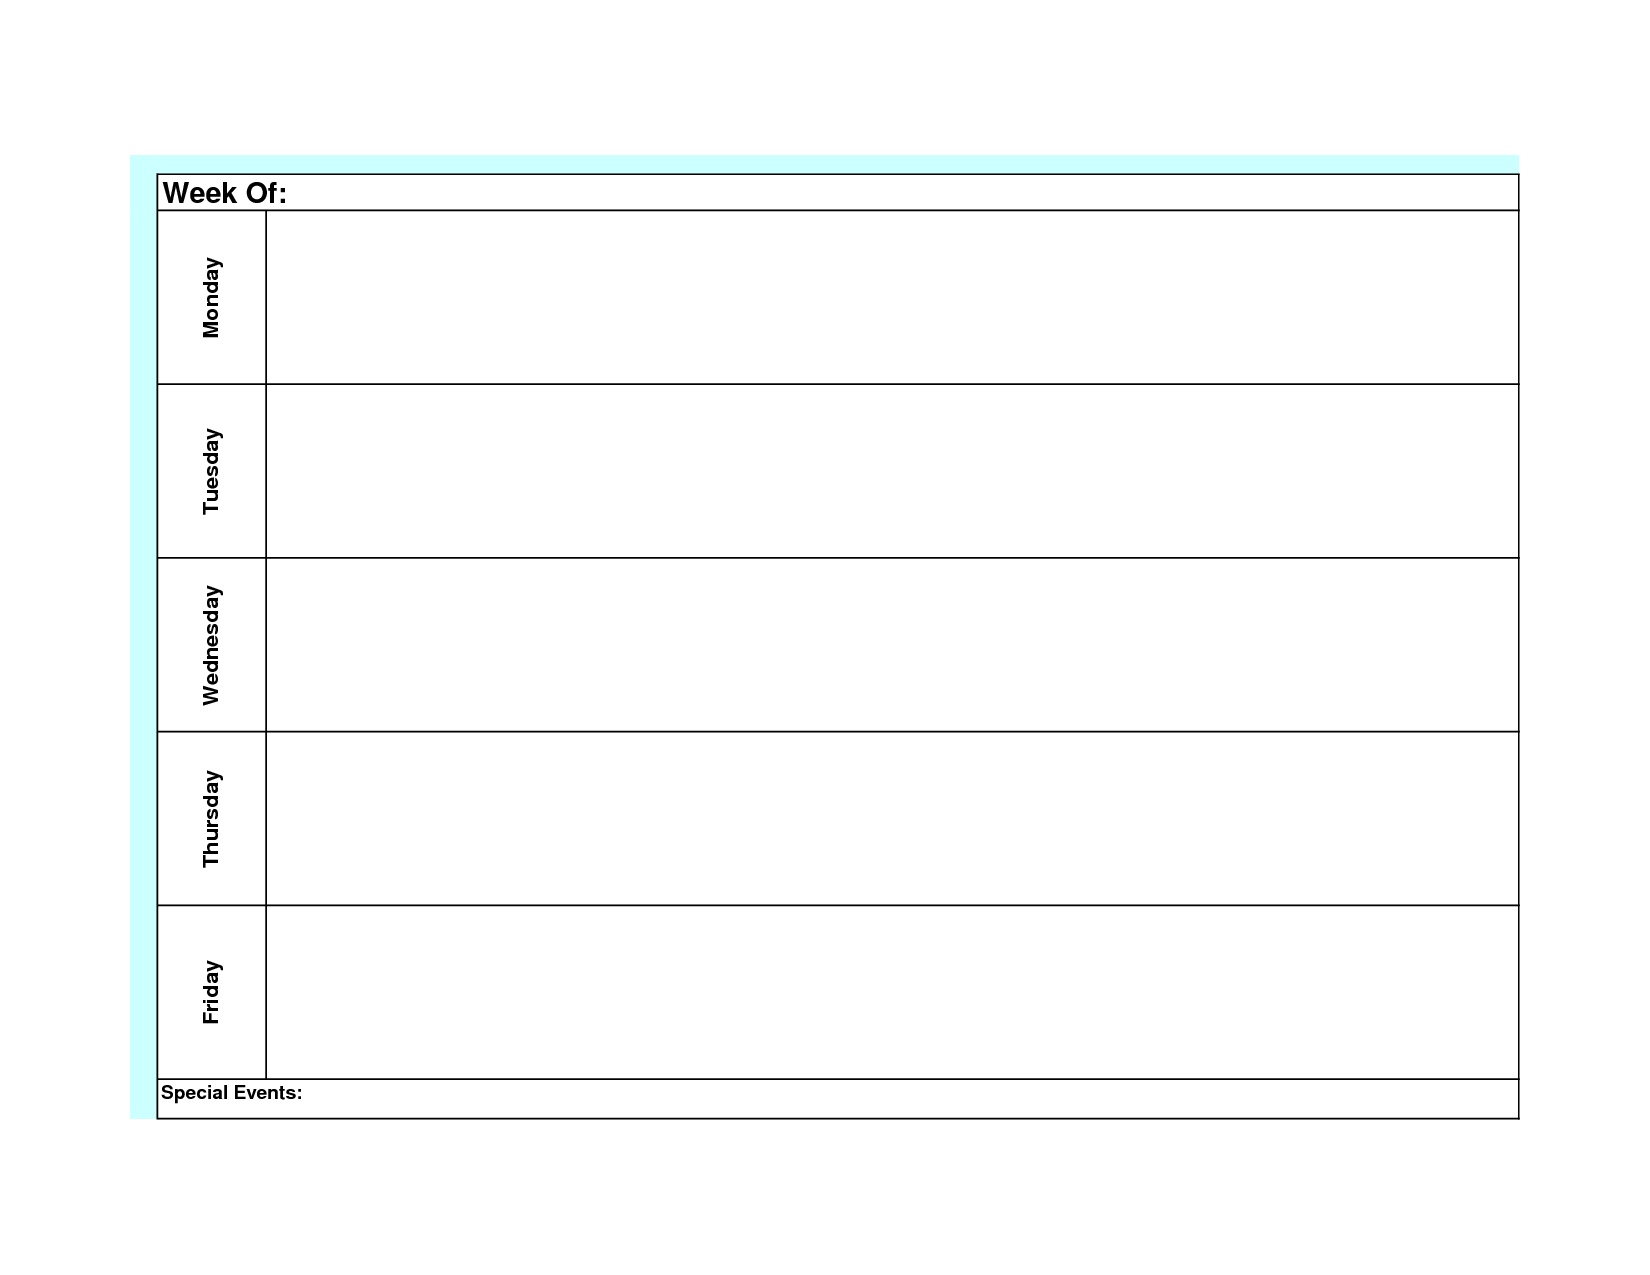 Blank Weekly Calendar Template Monday Friday | Planner | Weekly inside Monday Through Friday Blank Schedule Print Out